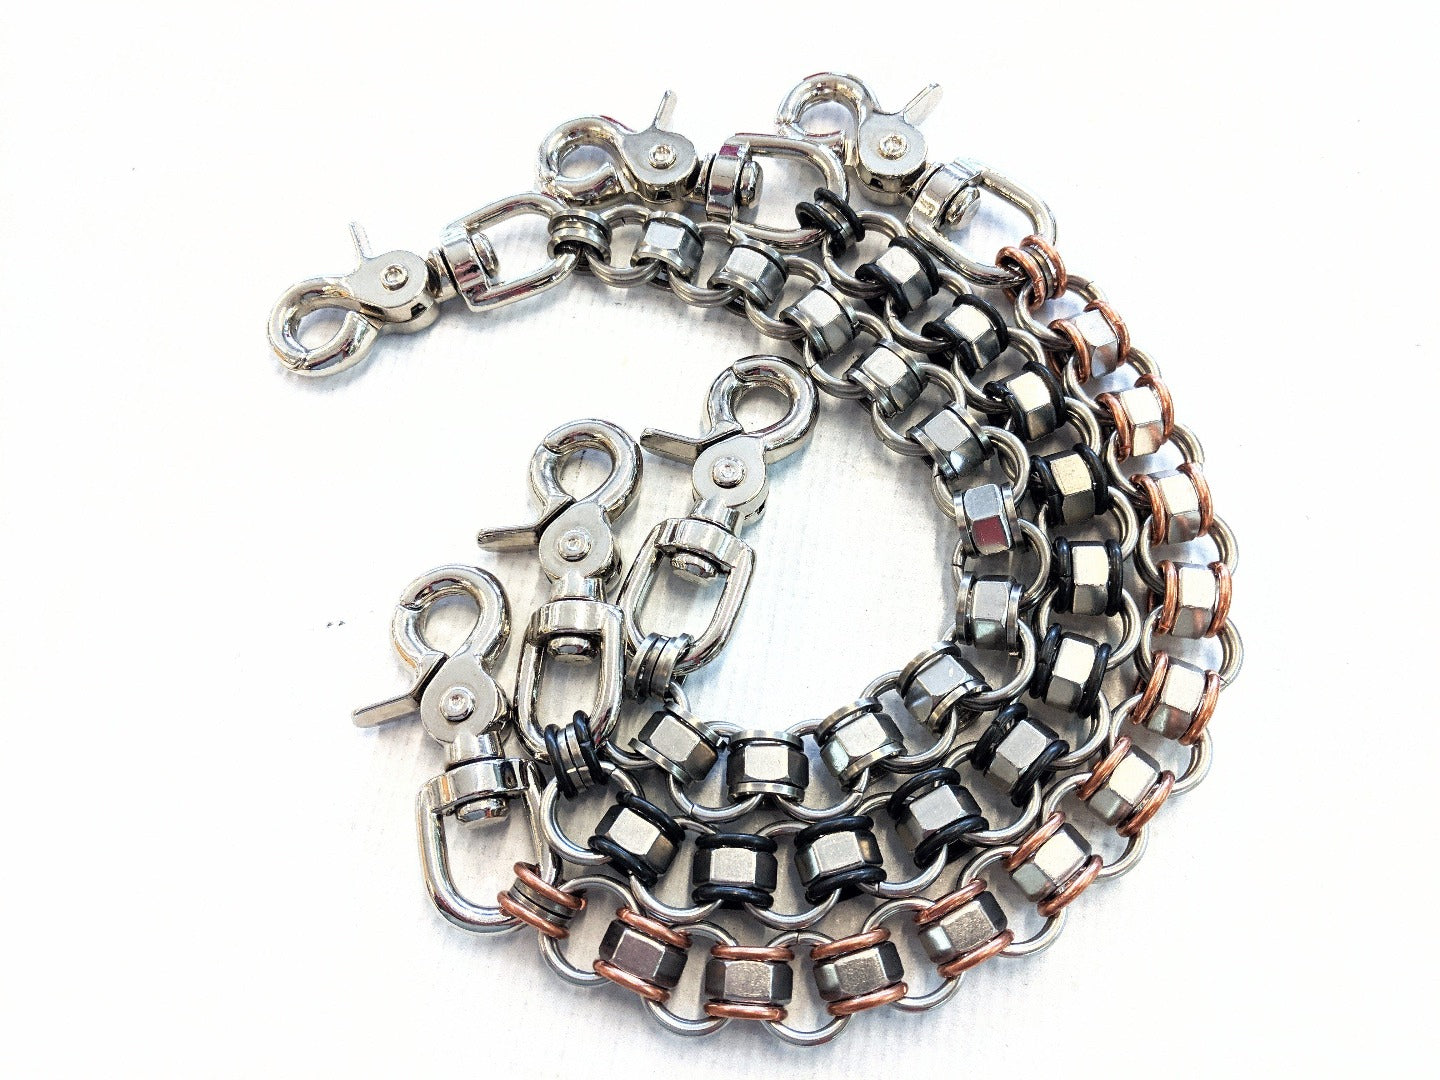 14 Inch Industry Chain Mail Wallet Chain - Anvil Customs